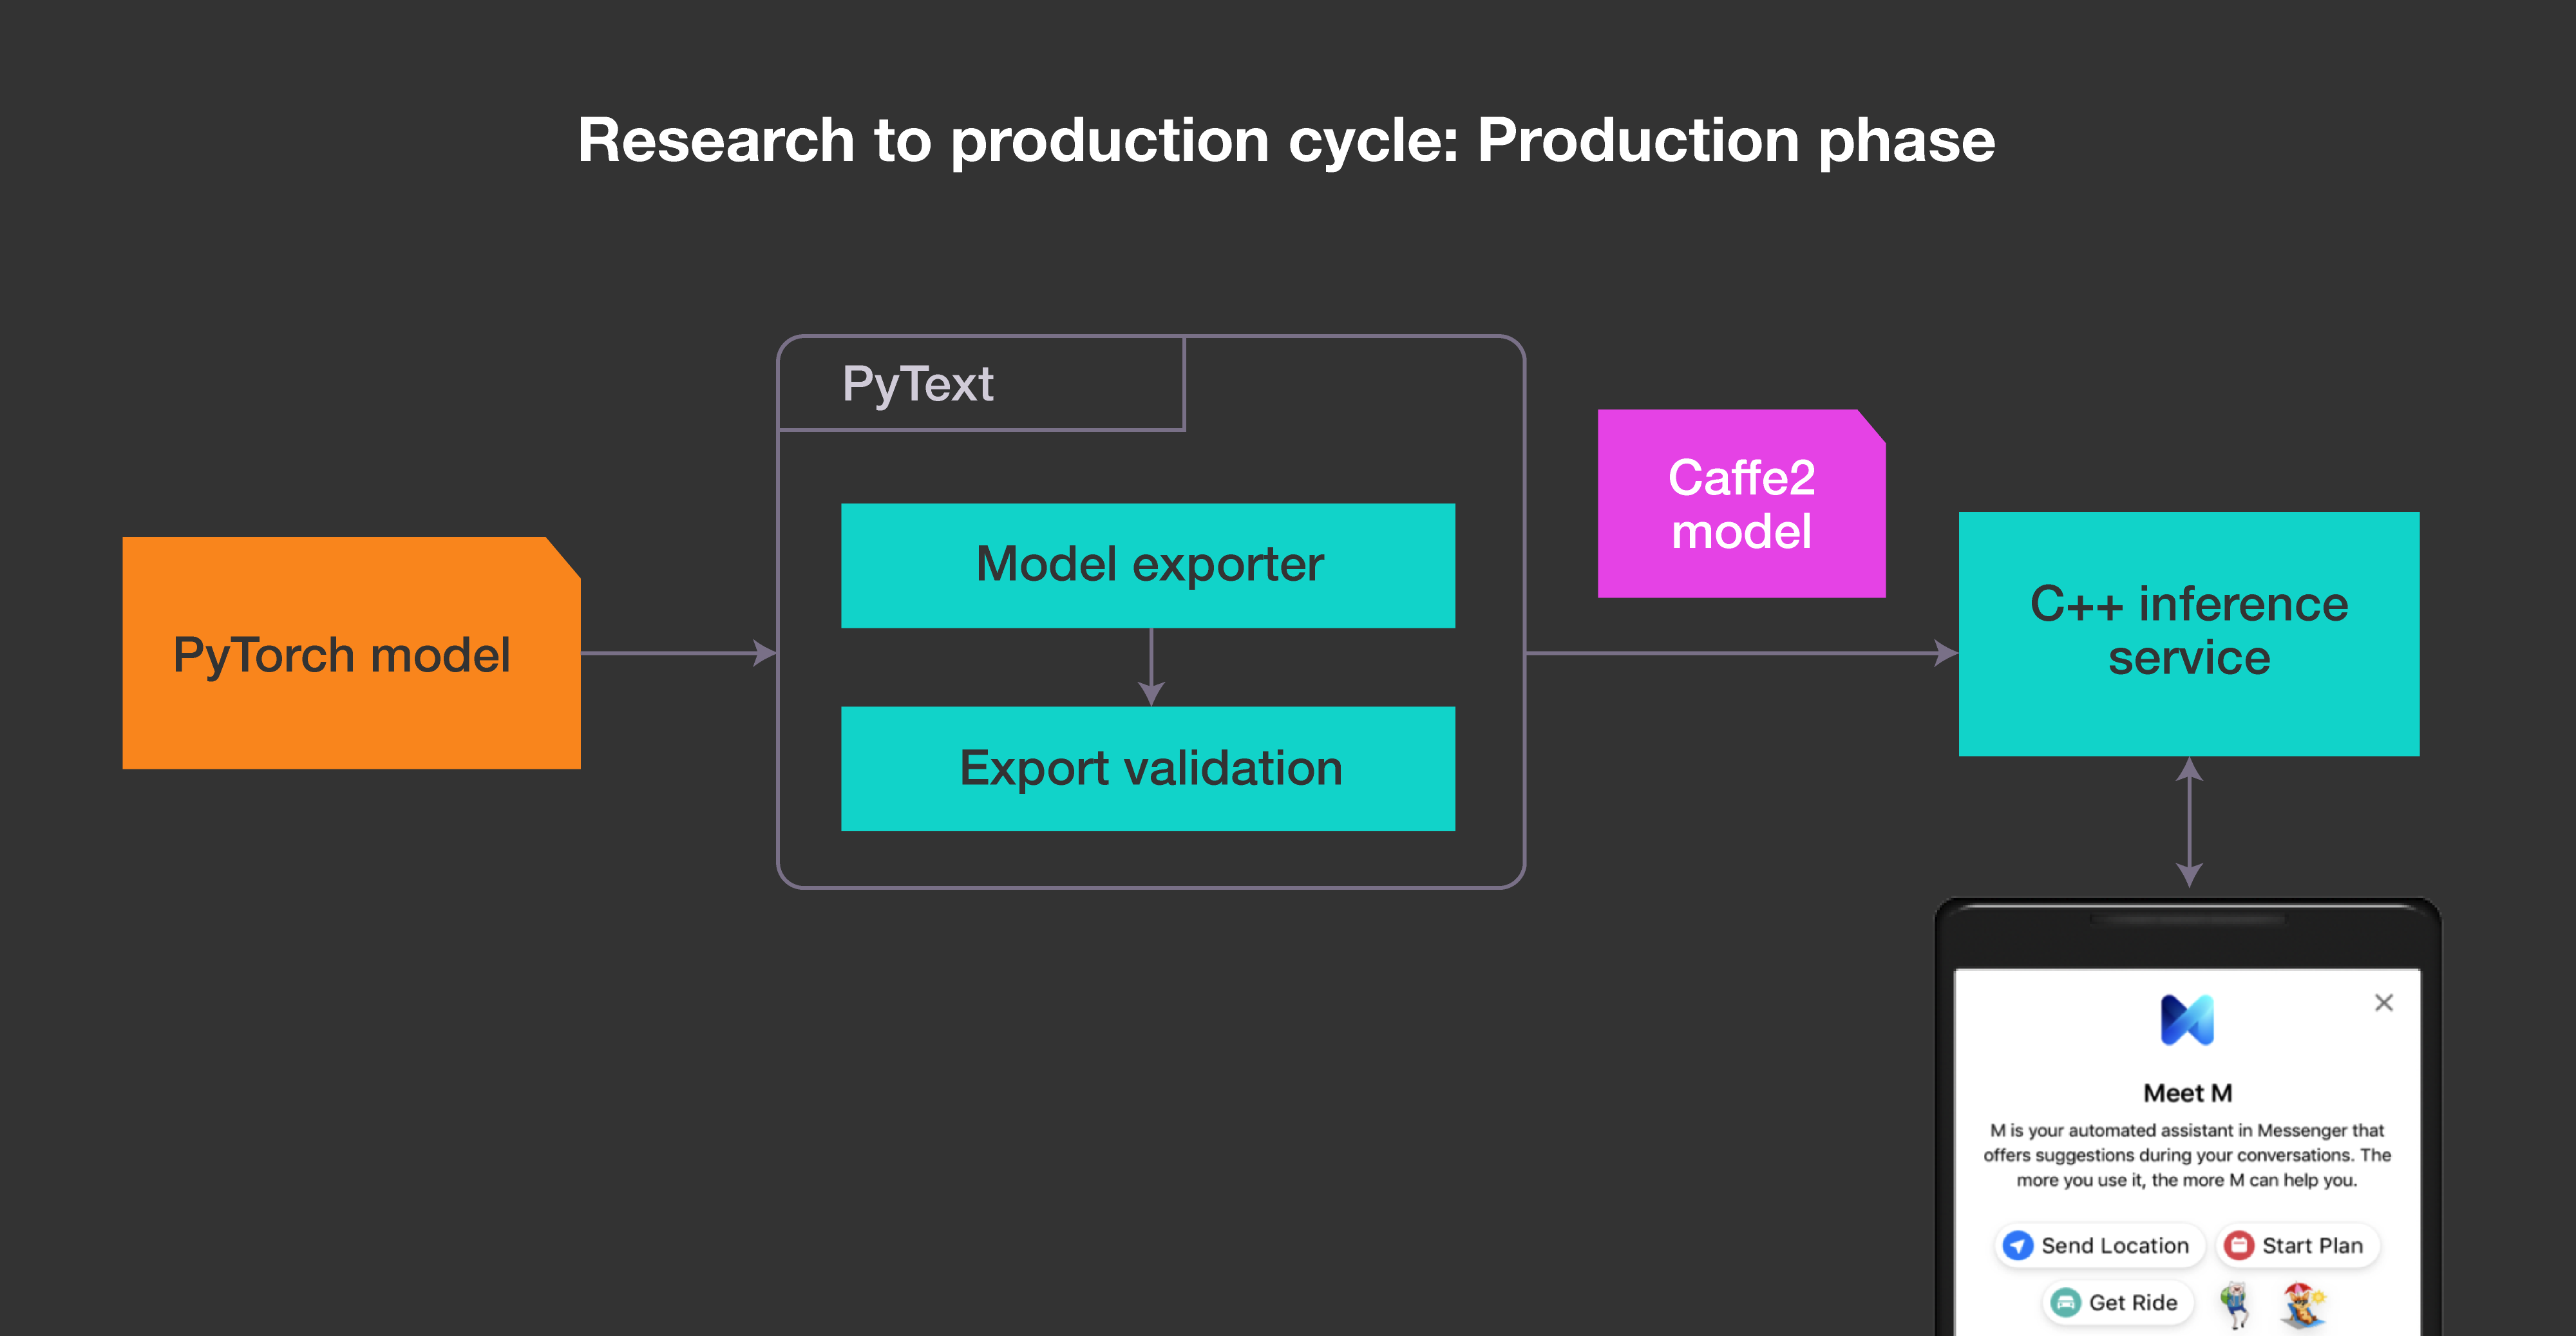 This flowchart illustrates how to use PyText to deploy your model to production.